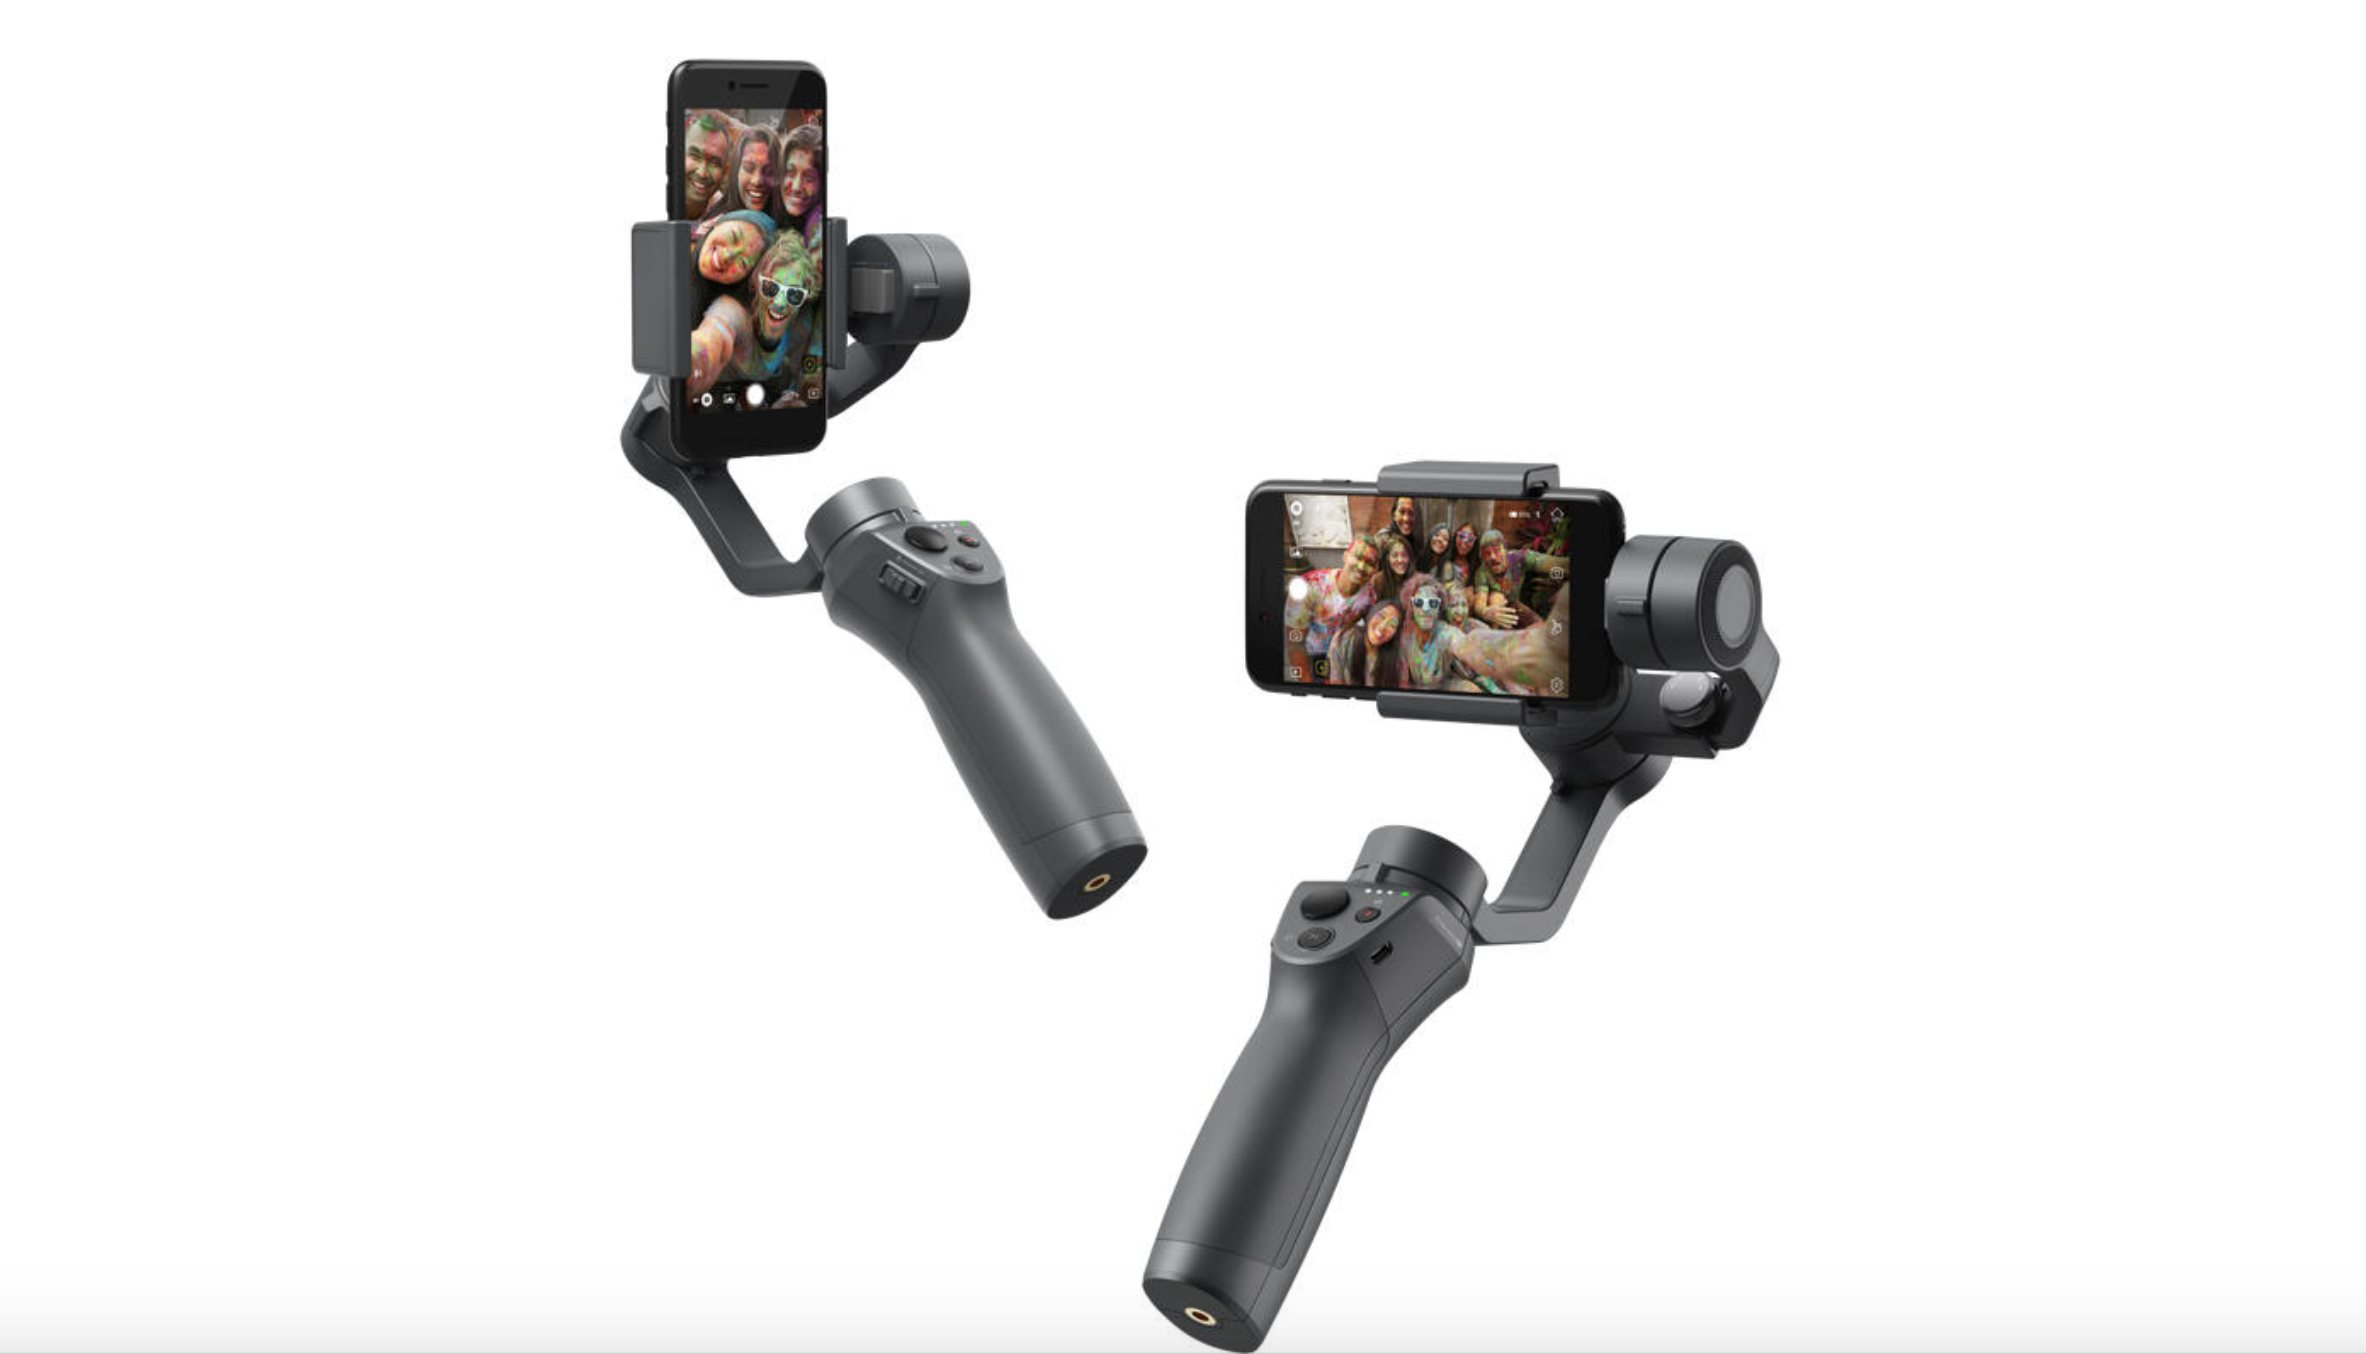 dji osmo mobile 2 cyber monday 2018